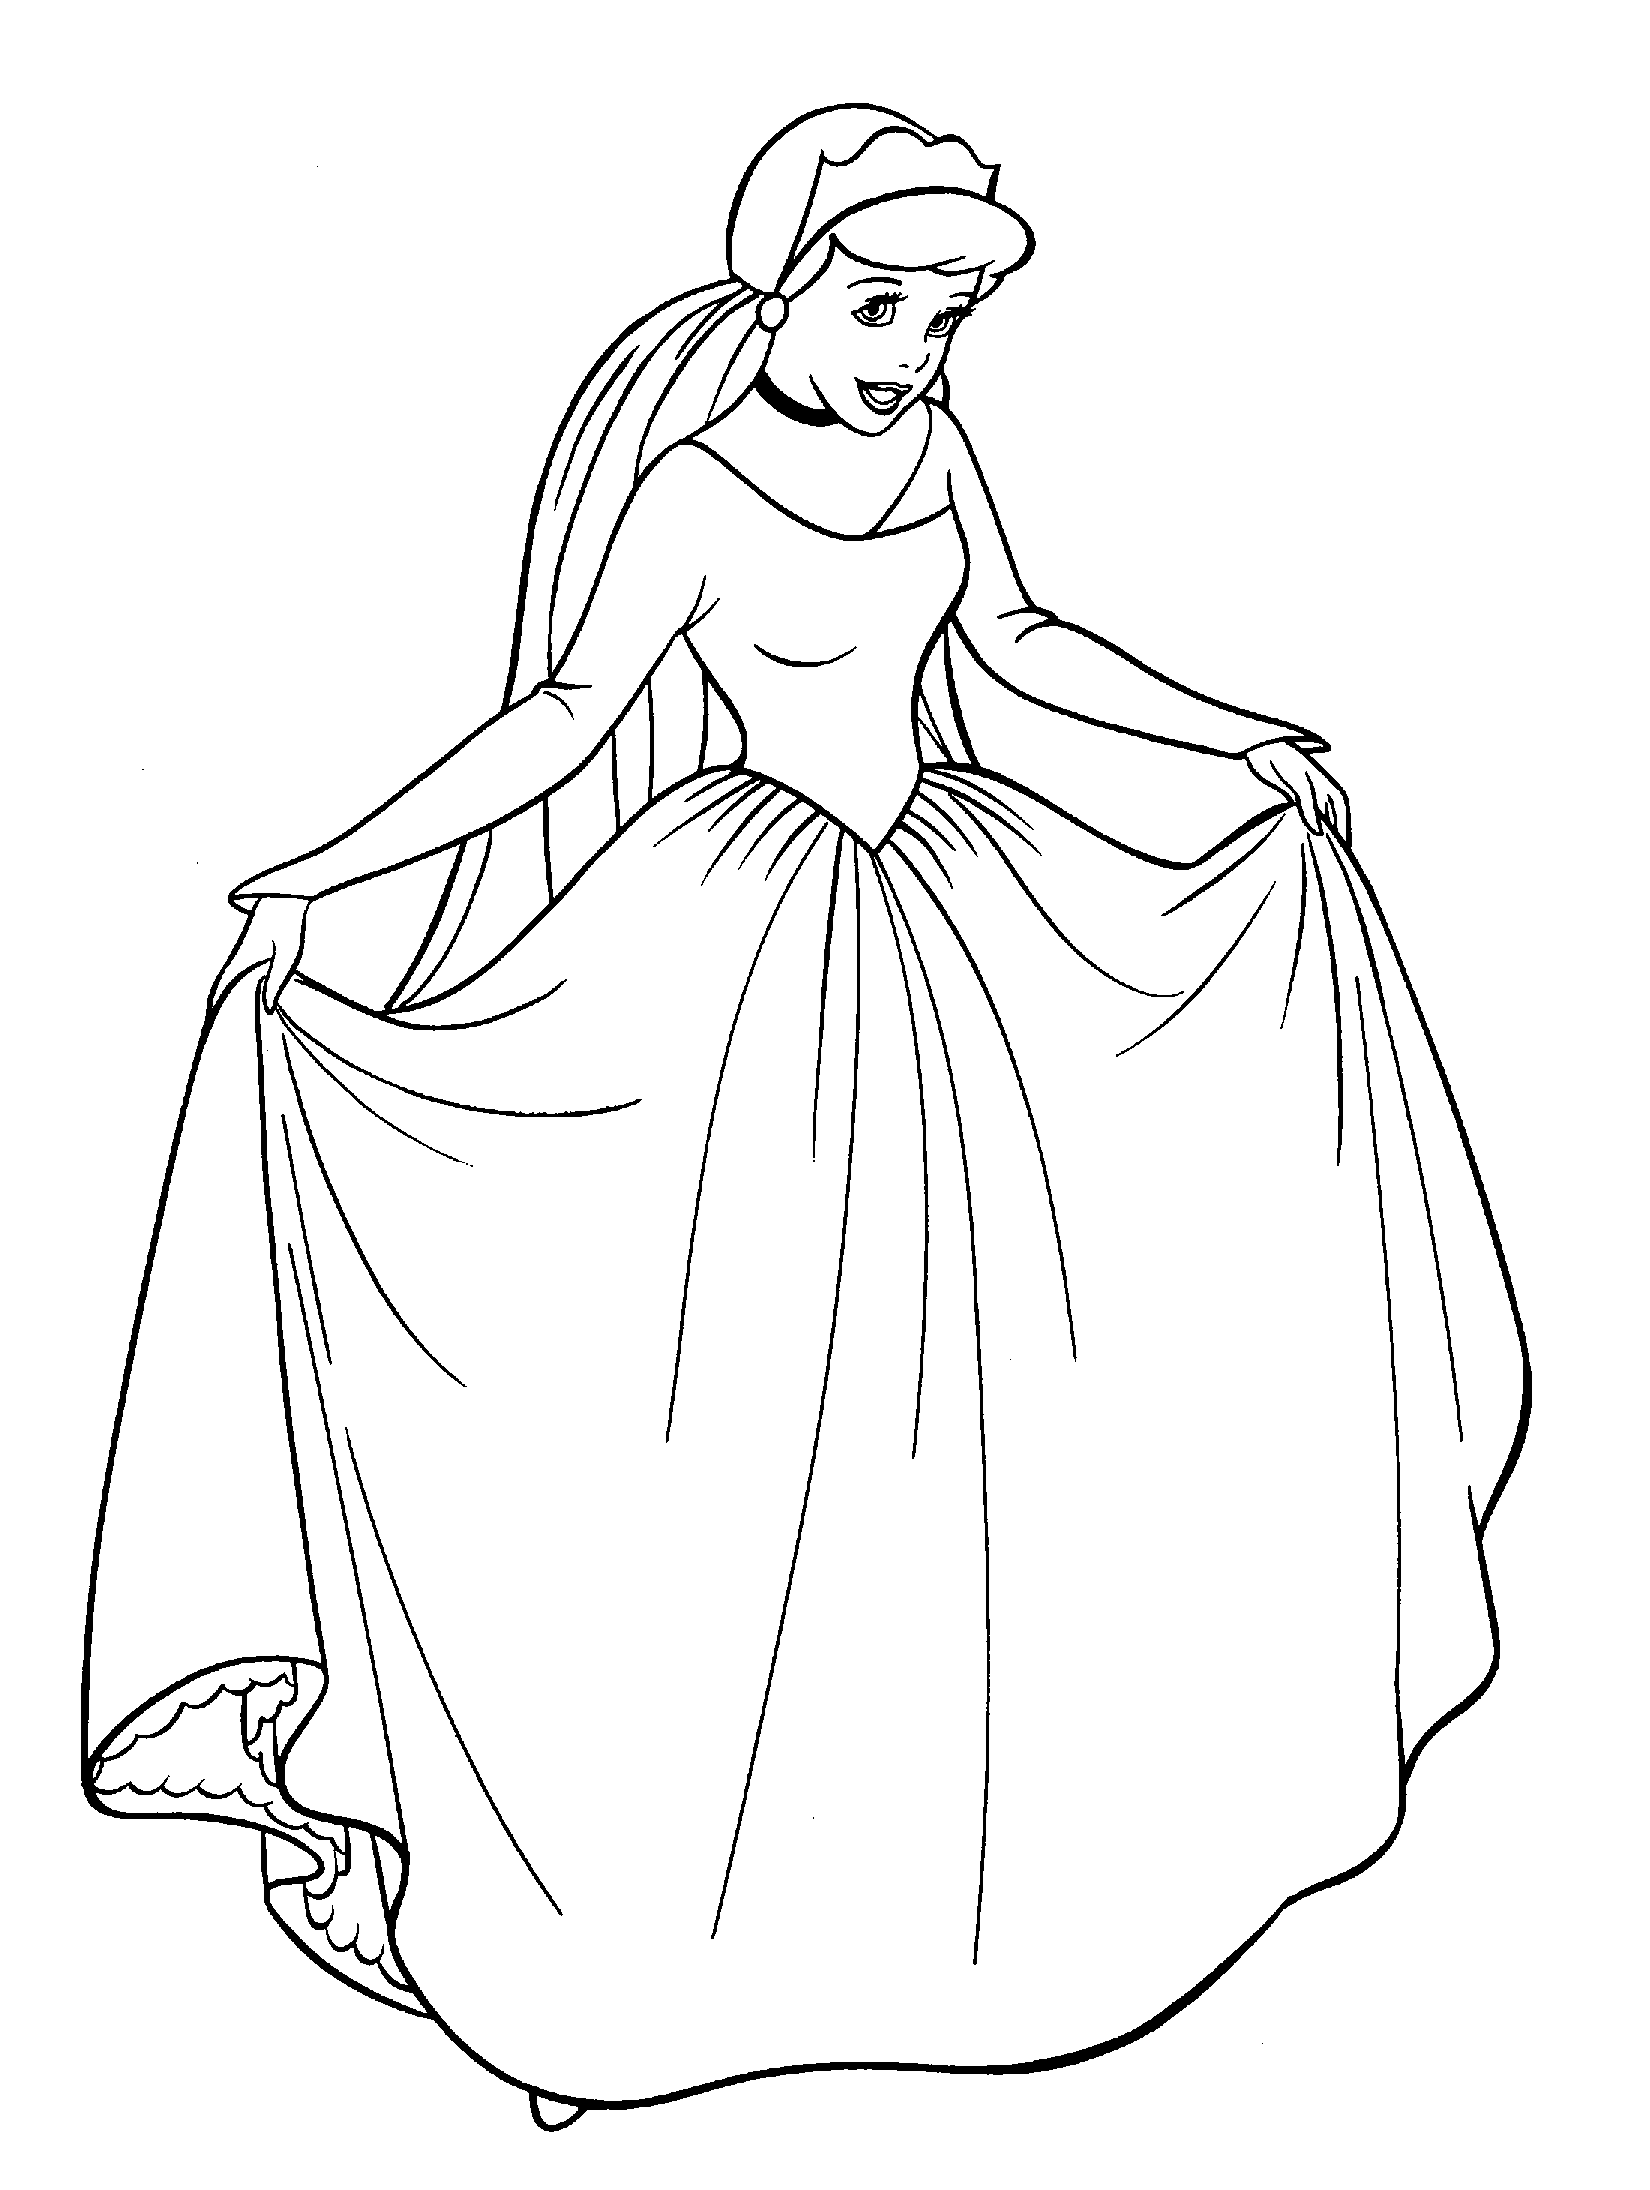 Free coloring pages cinderella - Free Printable Cinderella Coloring Pages For Kids